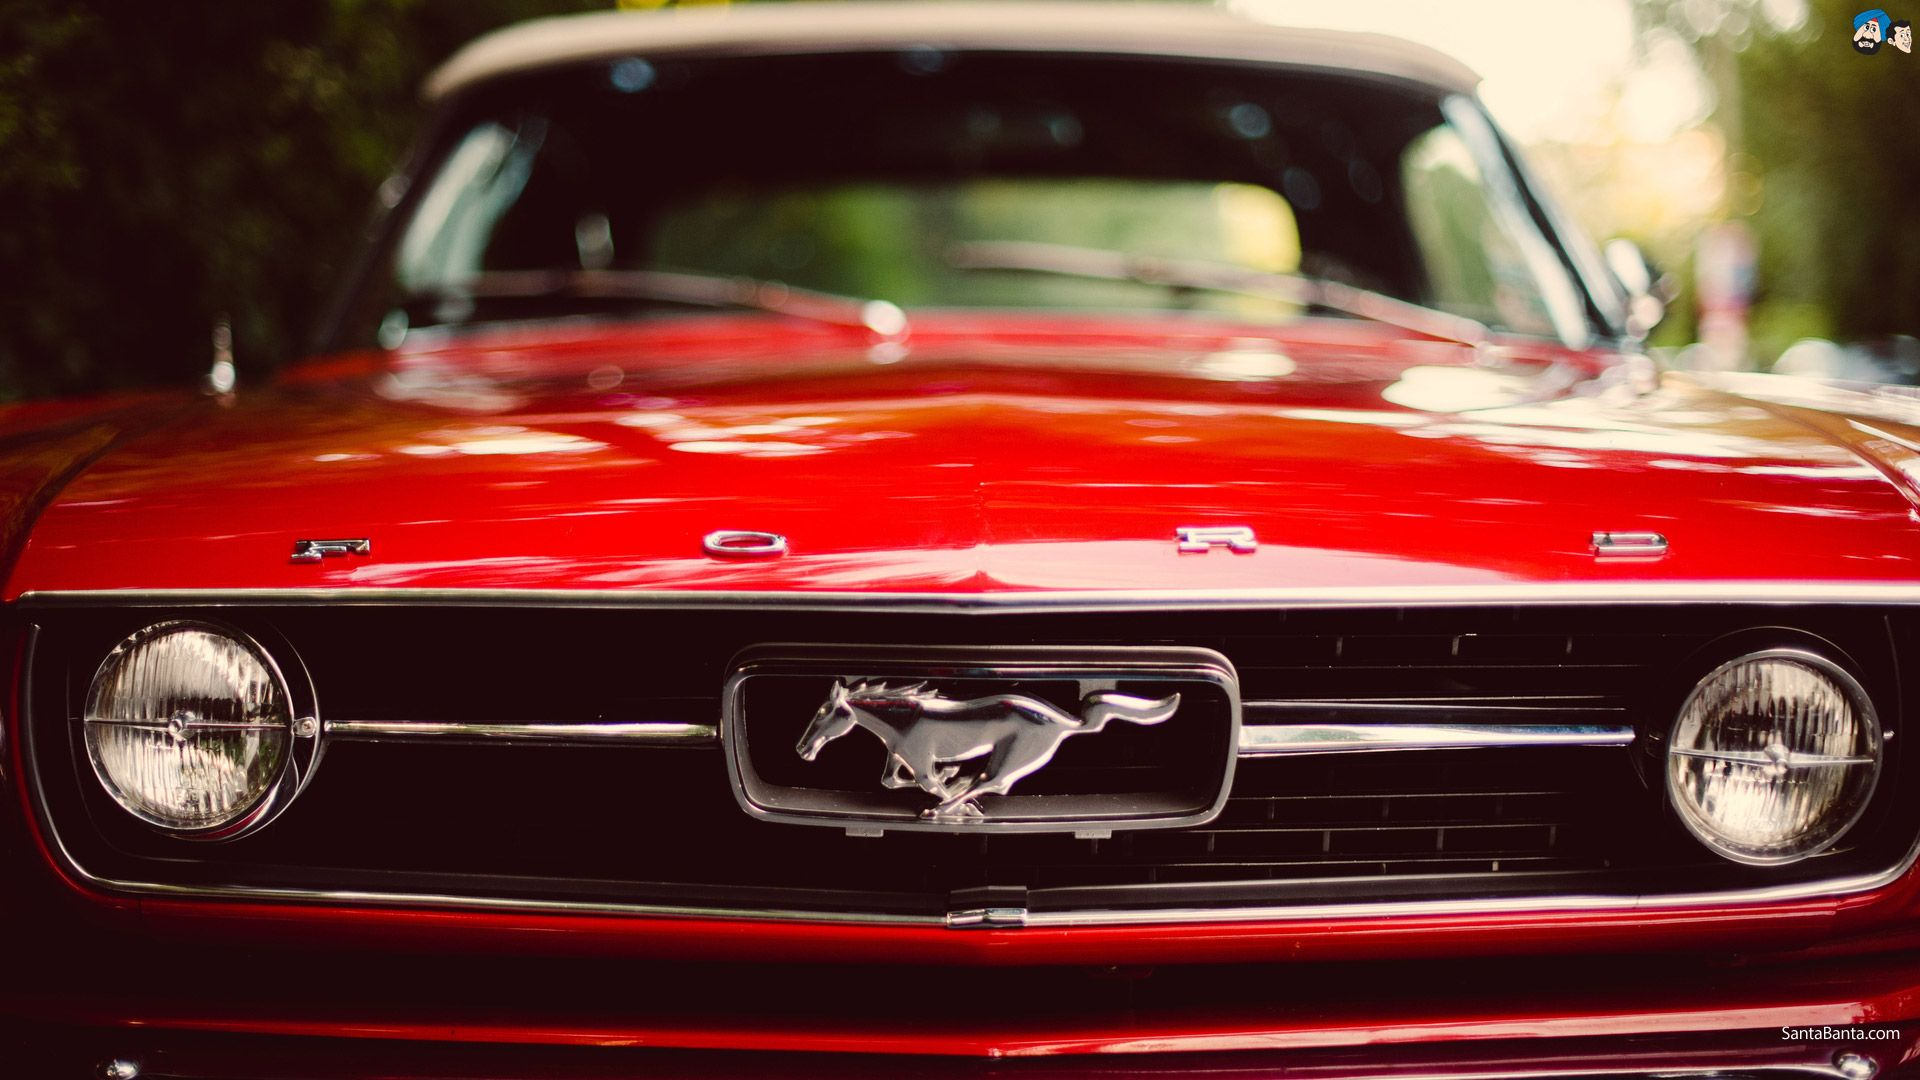 Collection of Ford Mustang Wallpaper on HDWallpapers